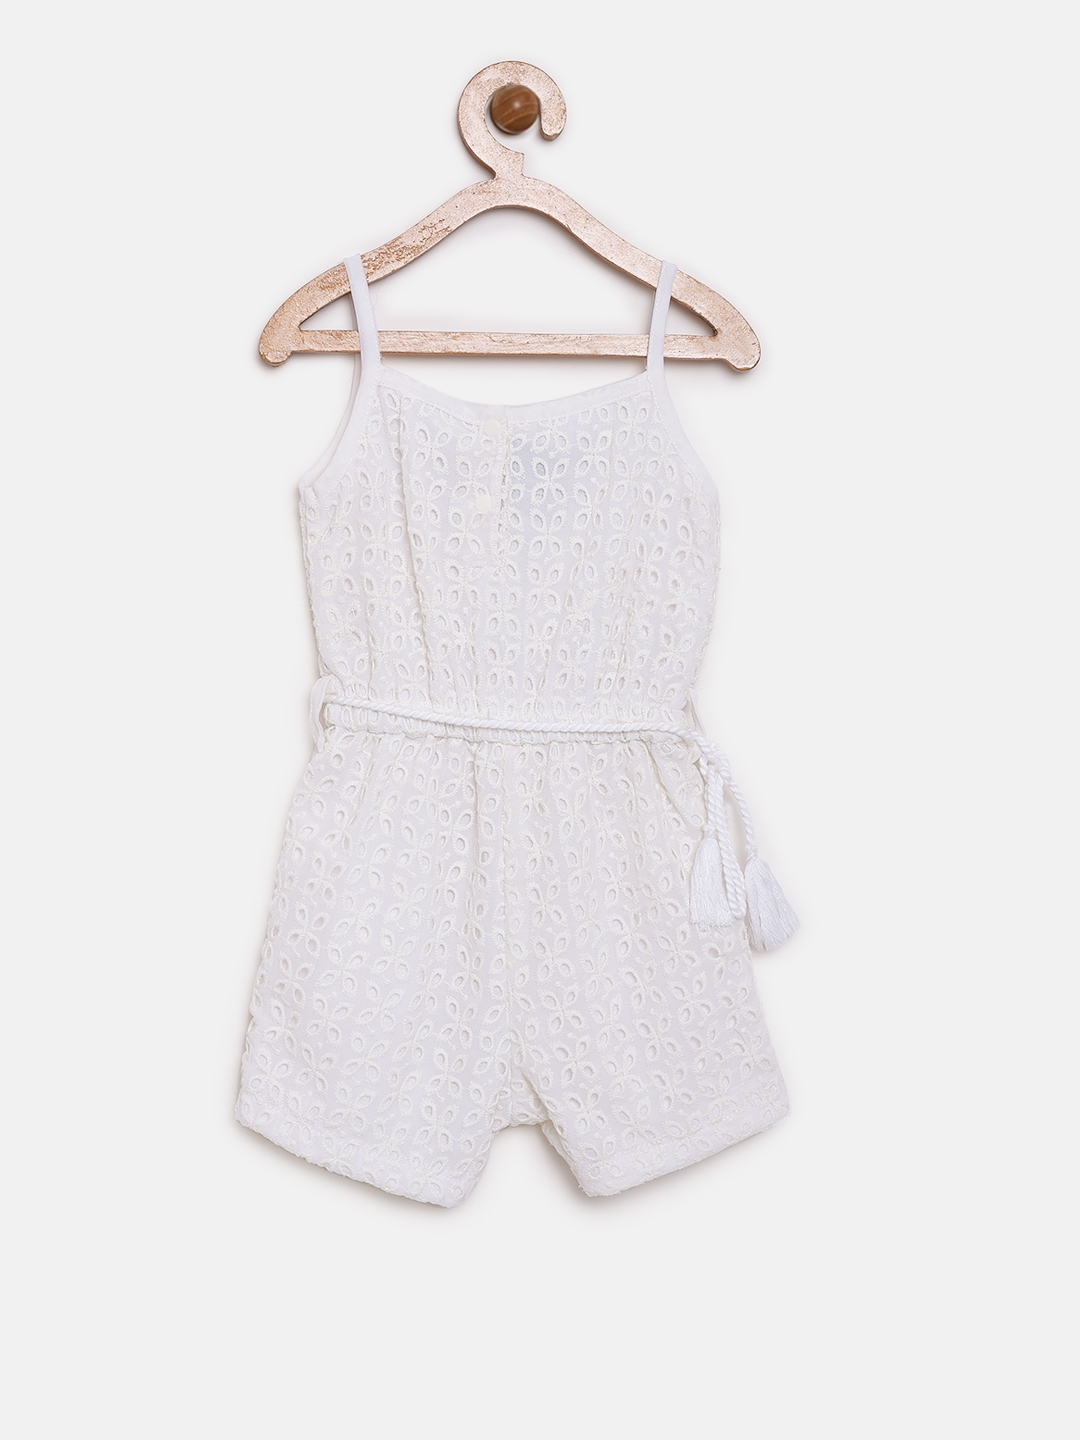 c962e7da6955 Buy Little Kangaroos White Schiffli Embroidered Playsuit - Jumpsuit ...